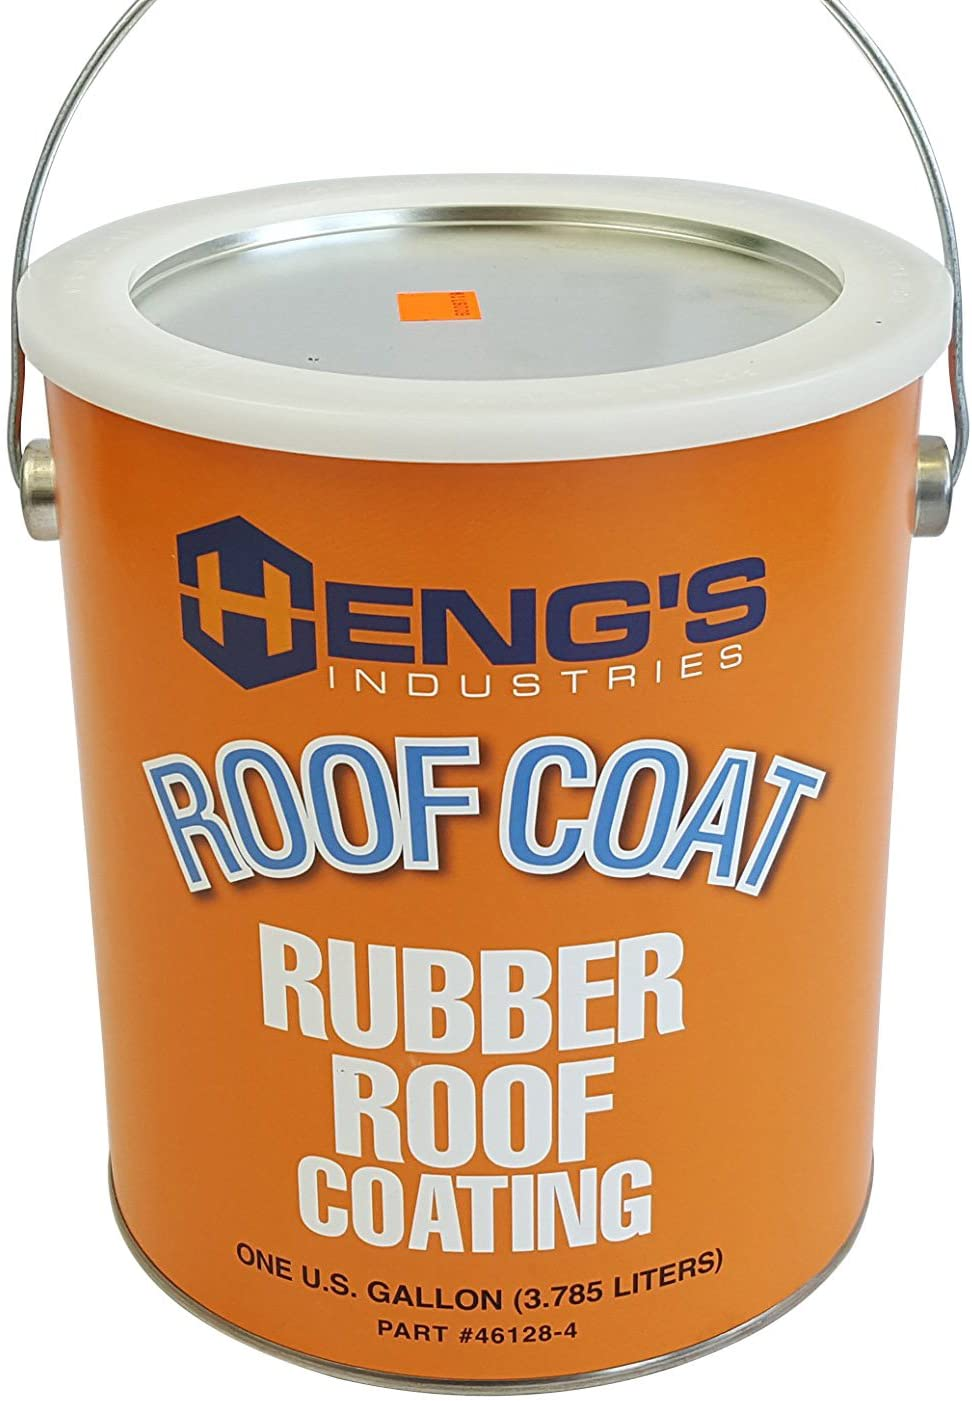 Heng's Rubber Roof Coating